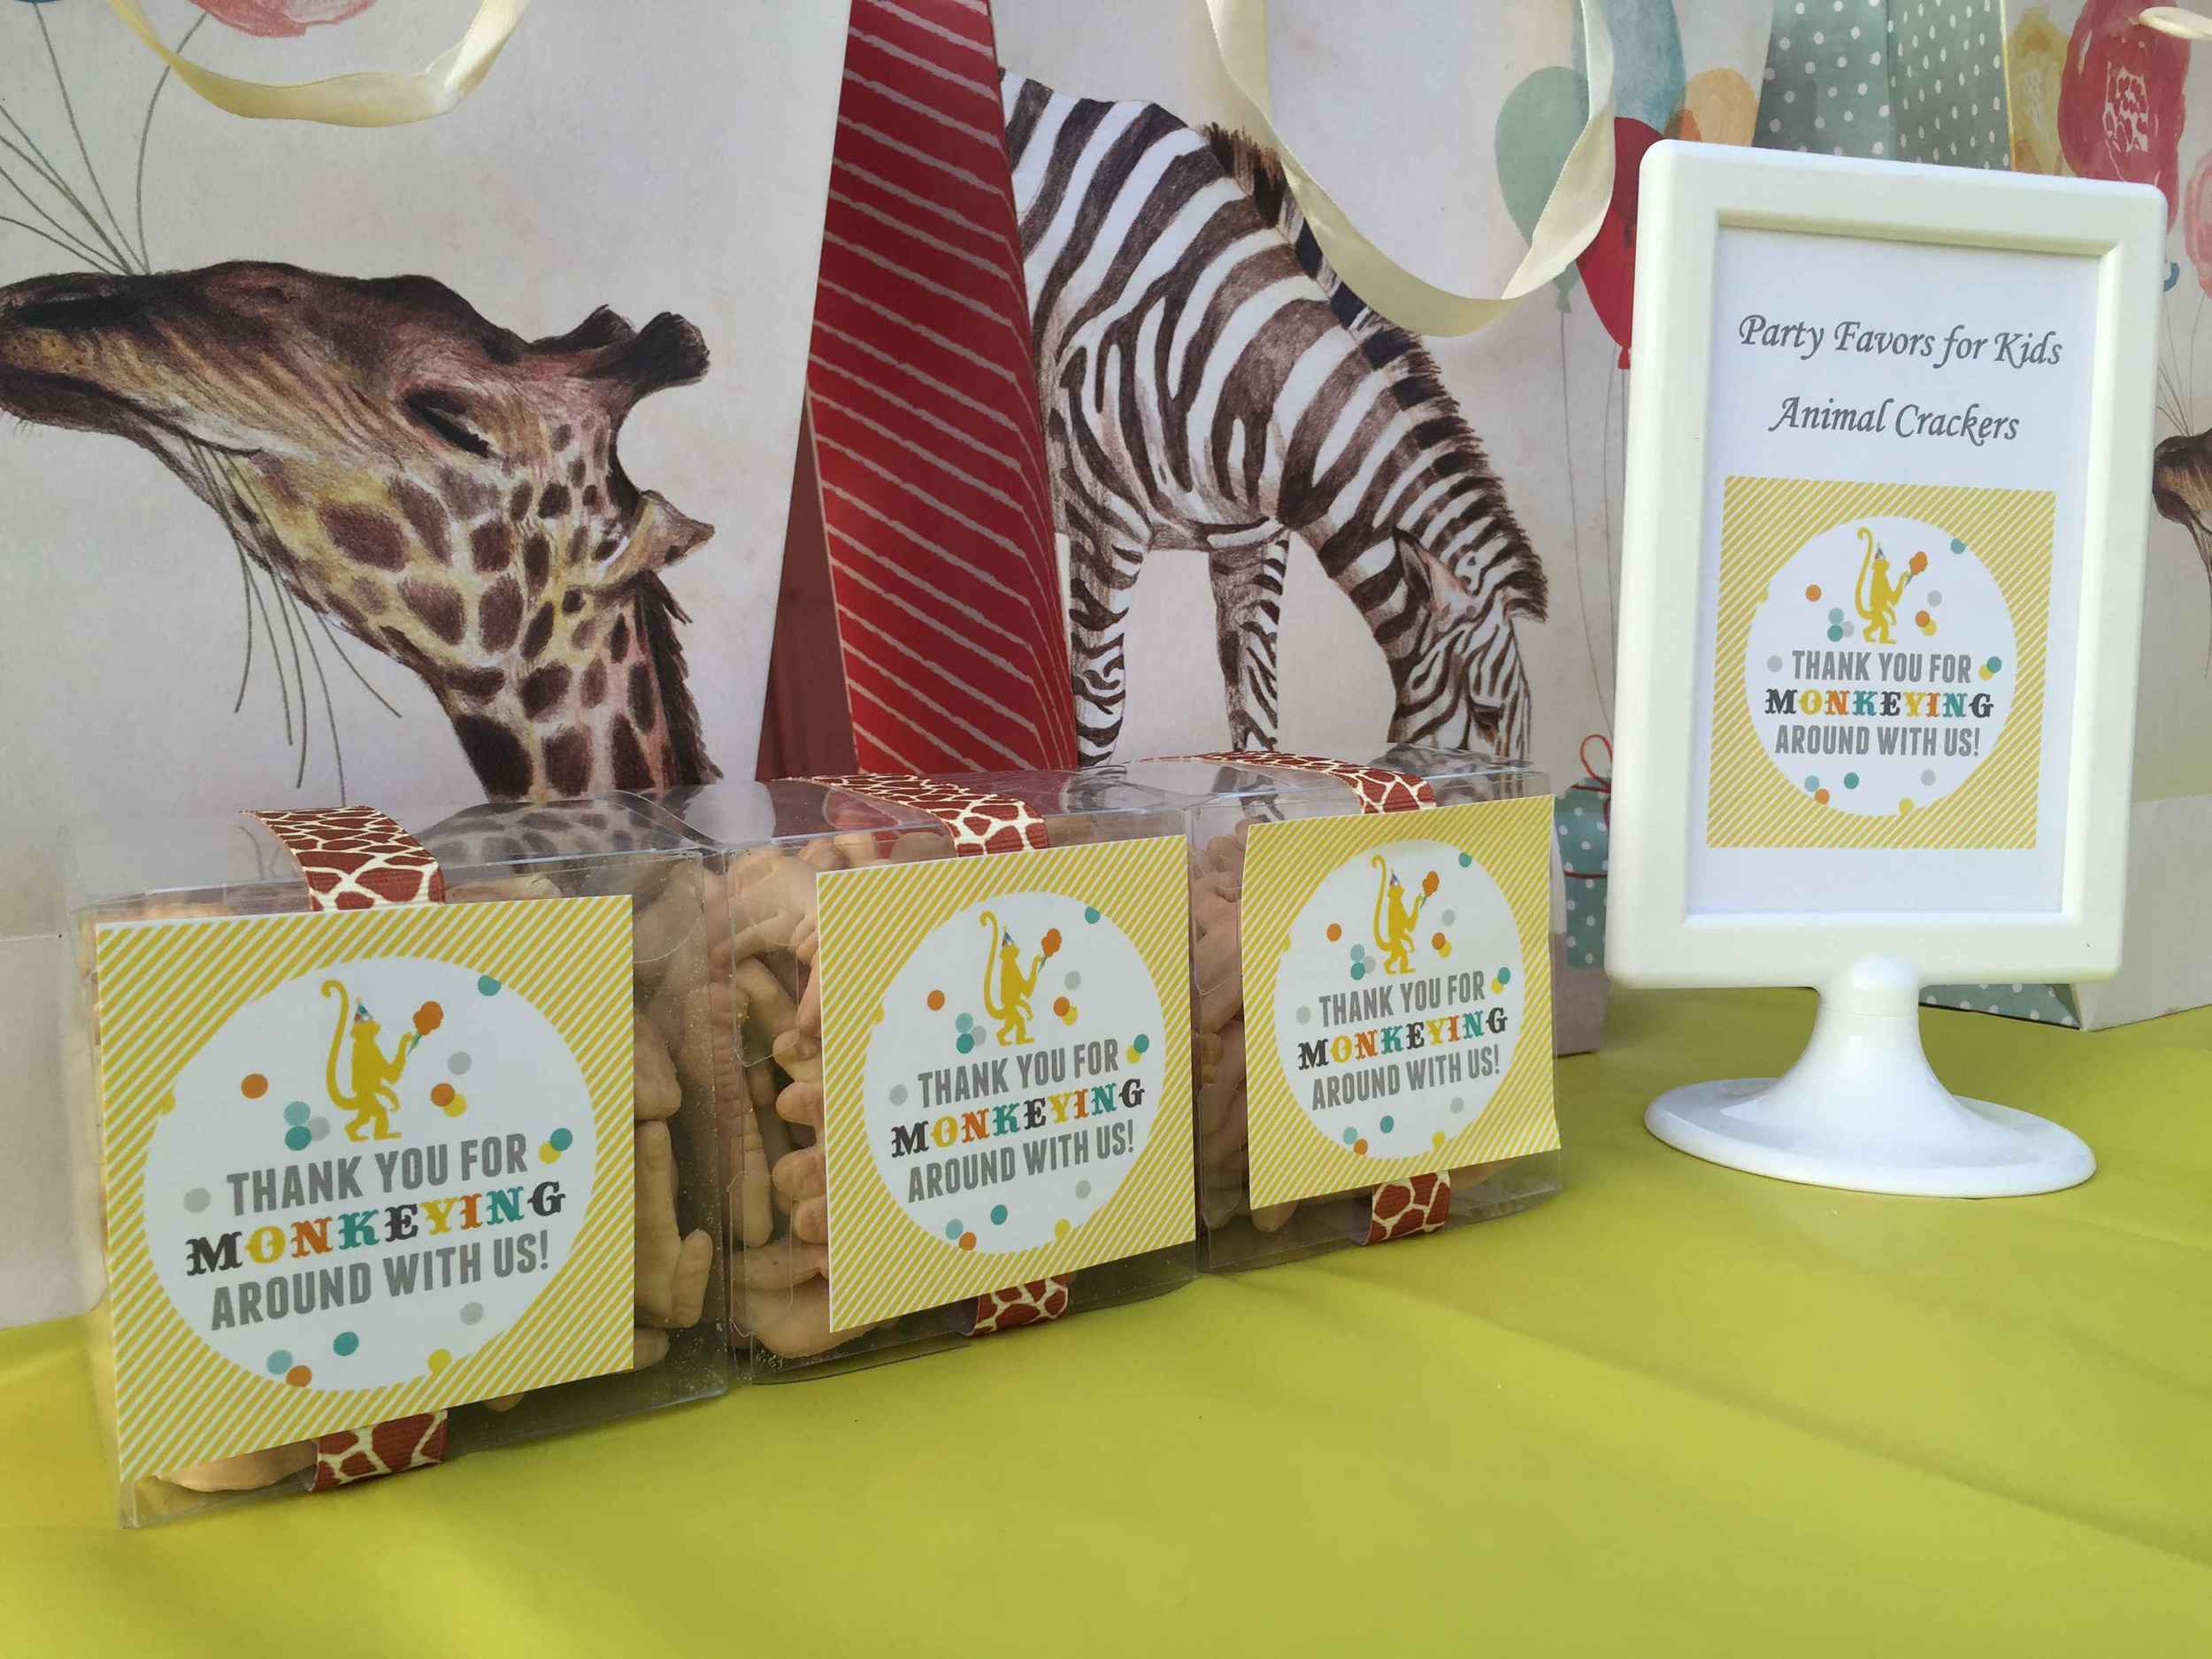 "img src=""httpwww.theparkwayevents.jpg"" alt=""San Francisco Bay Area Kids Birthday Party Event Planner Zoo Themed Party Favors"".jpg"